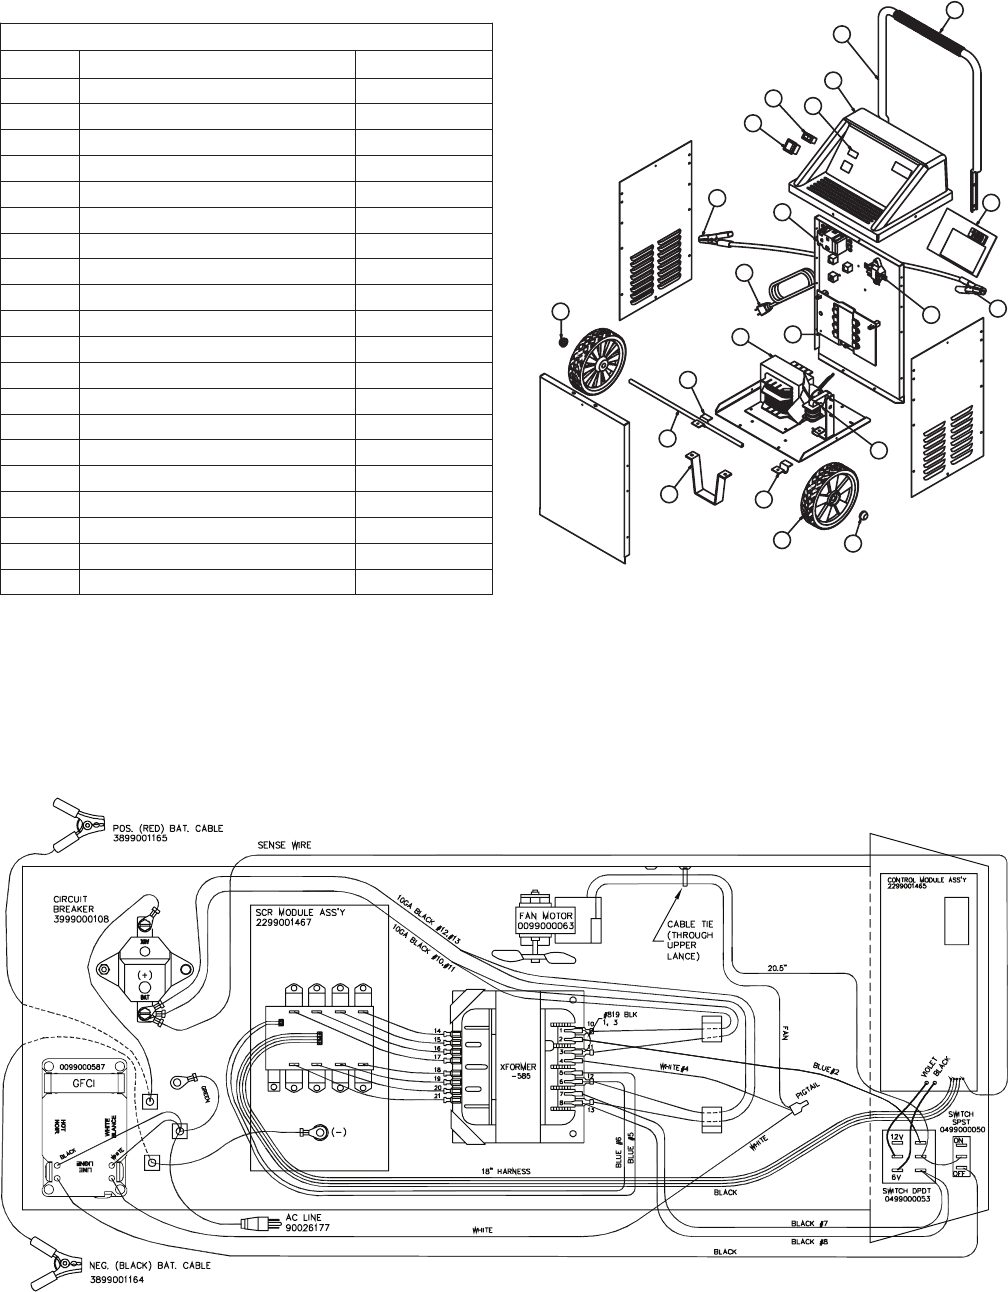 hight resolution of 5fdfd23a 430e 4481 a614 ed7f60287d6c bg4 wiring diagram for sears battery charger circuit schumacher battery